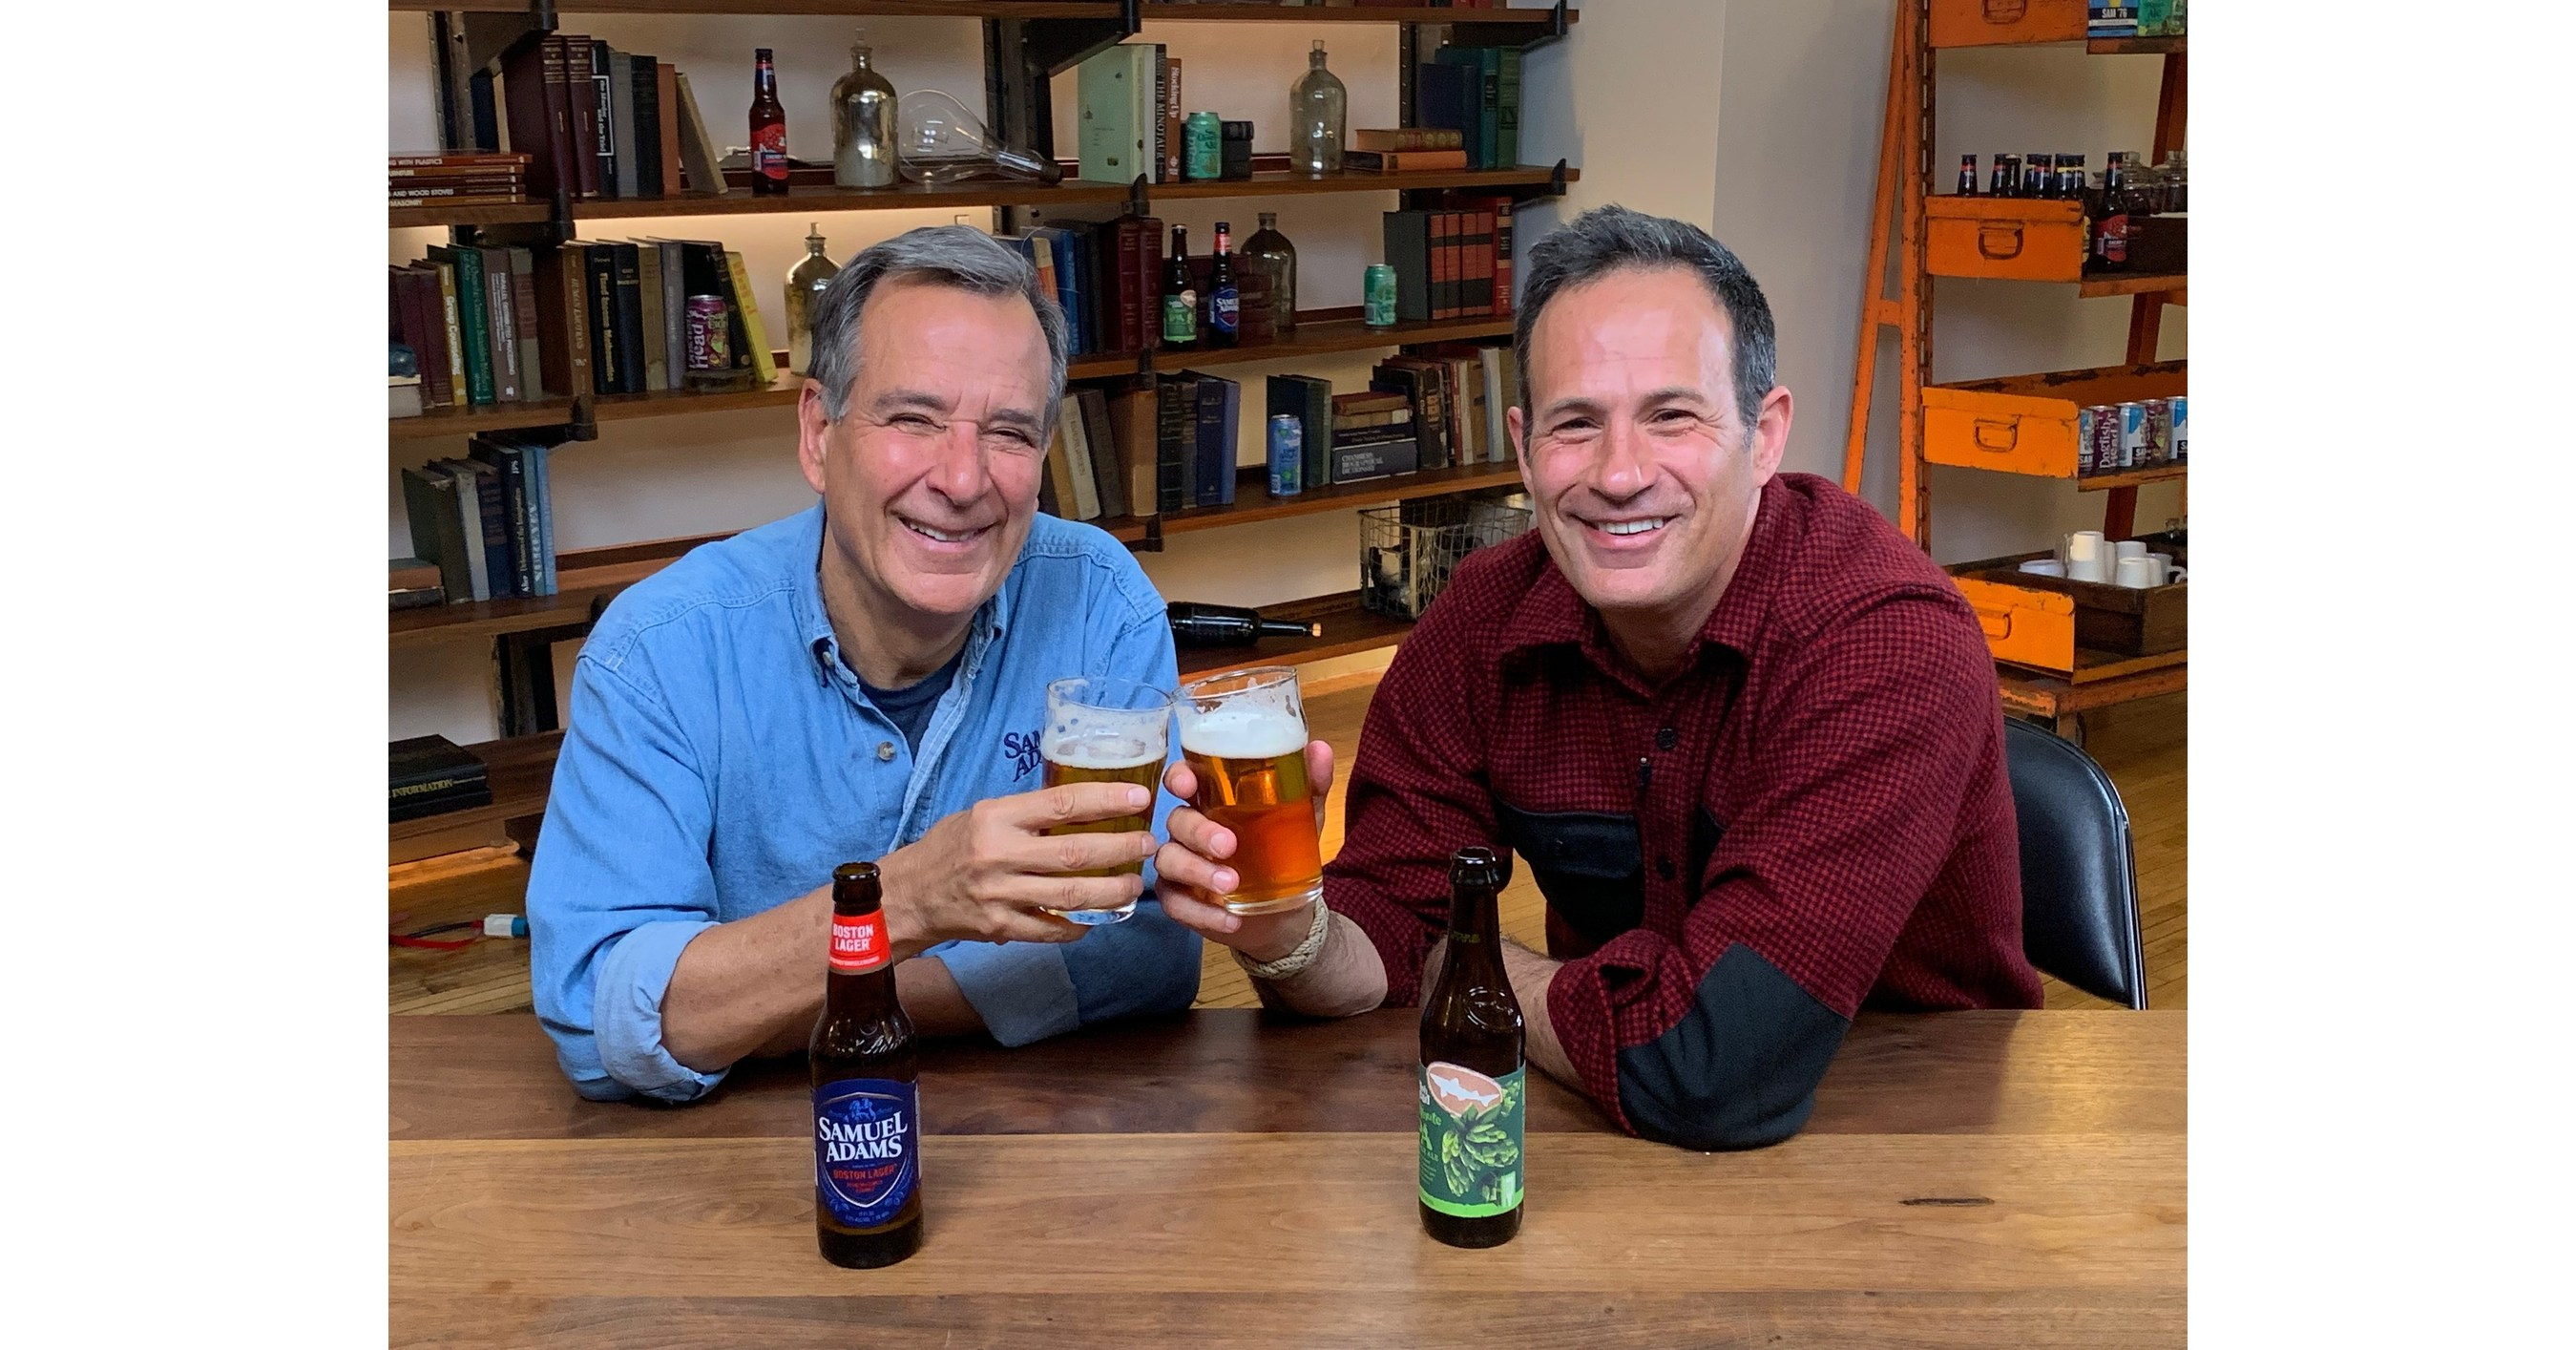 The Boston Beer Company And Dogfish Head Brewery To Merge, Creating The Most Dynamic American-owned Platform For Craft Beer And Beyond photo